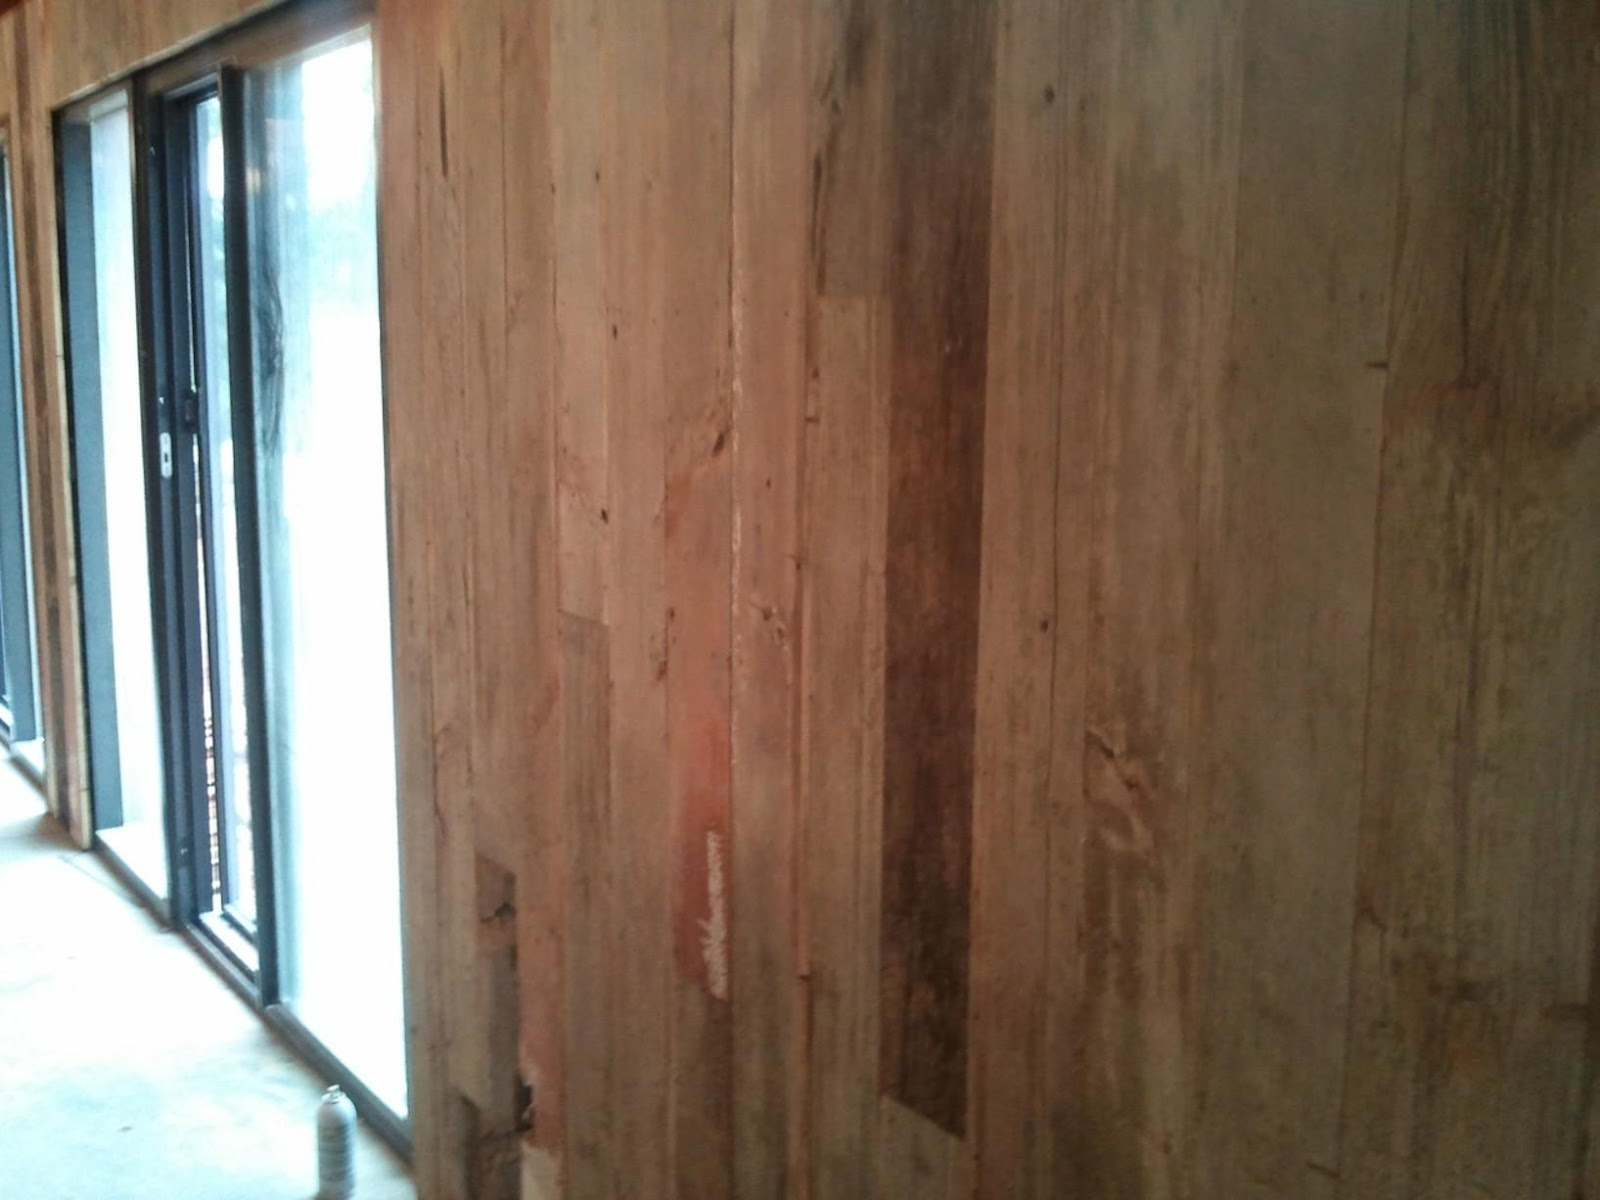 Barnwood Panelling Timber Springs Lodge Barn Wood Wall Paneling